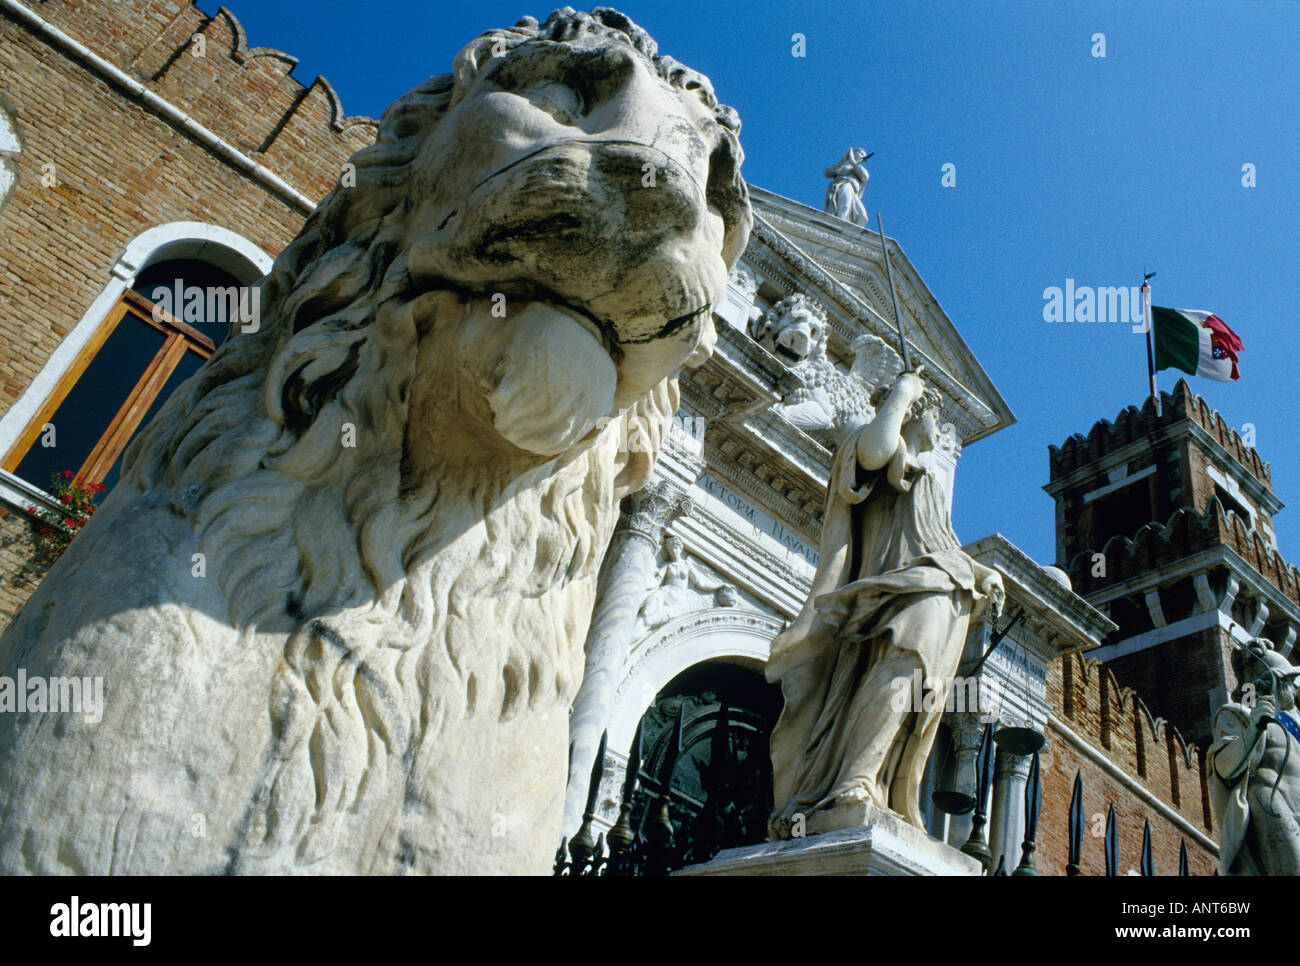 Venice Italy Lion statue stands on guard outside the gate of the Arsenale the old shipbuilding yard - Stock Image